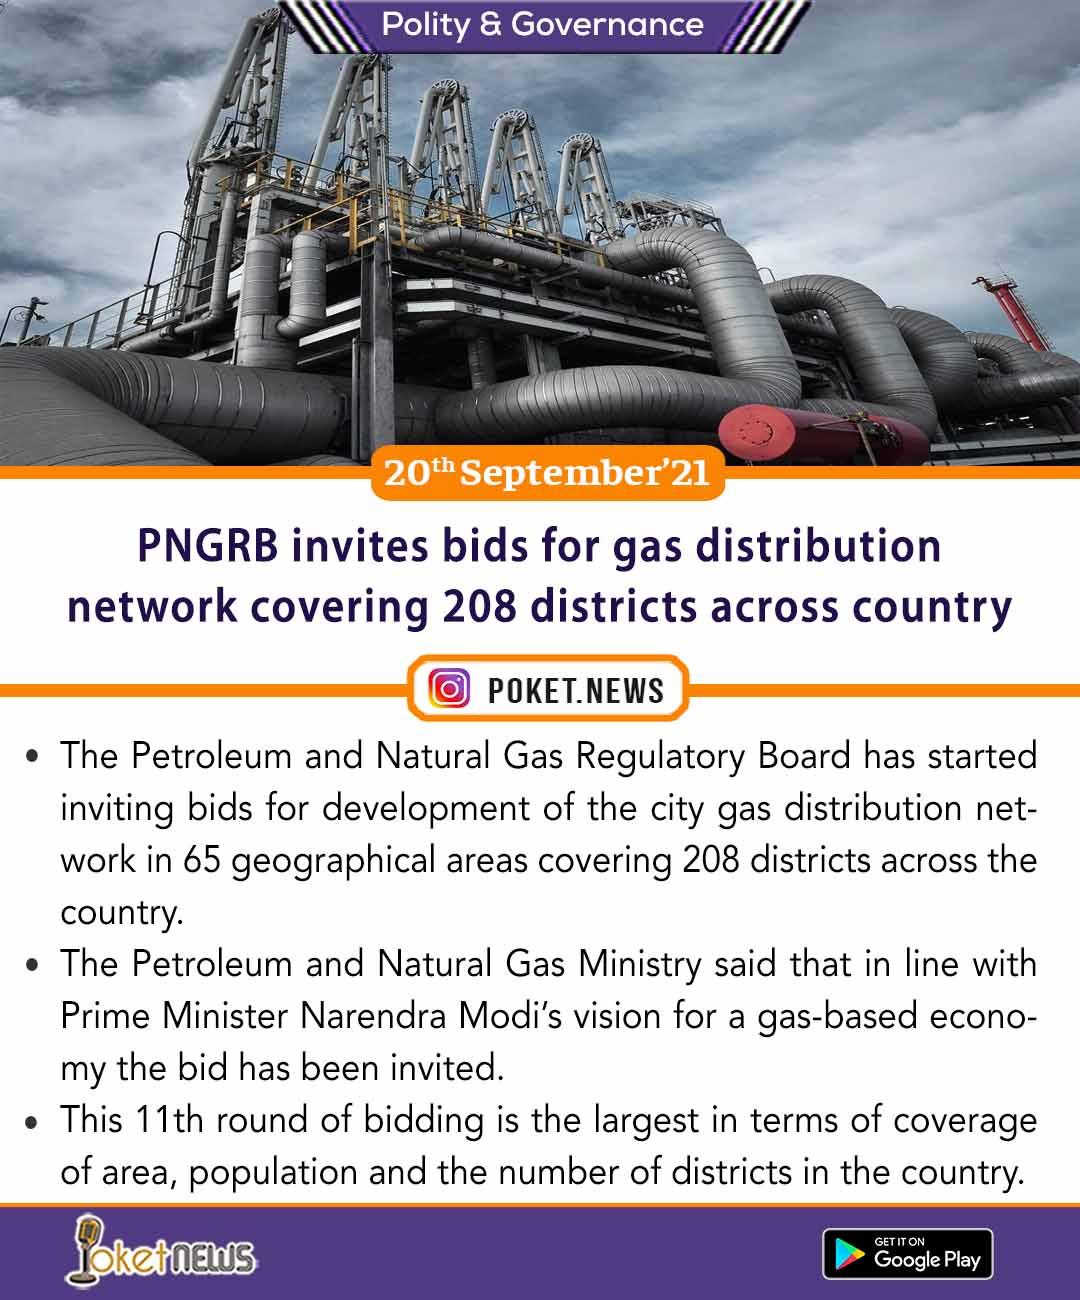 PNGRB invites bids for gas distribution network covering 208 districts across country